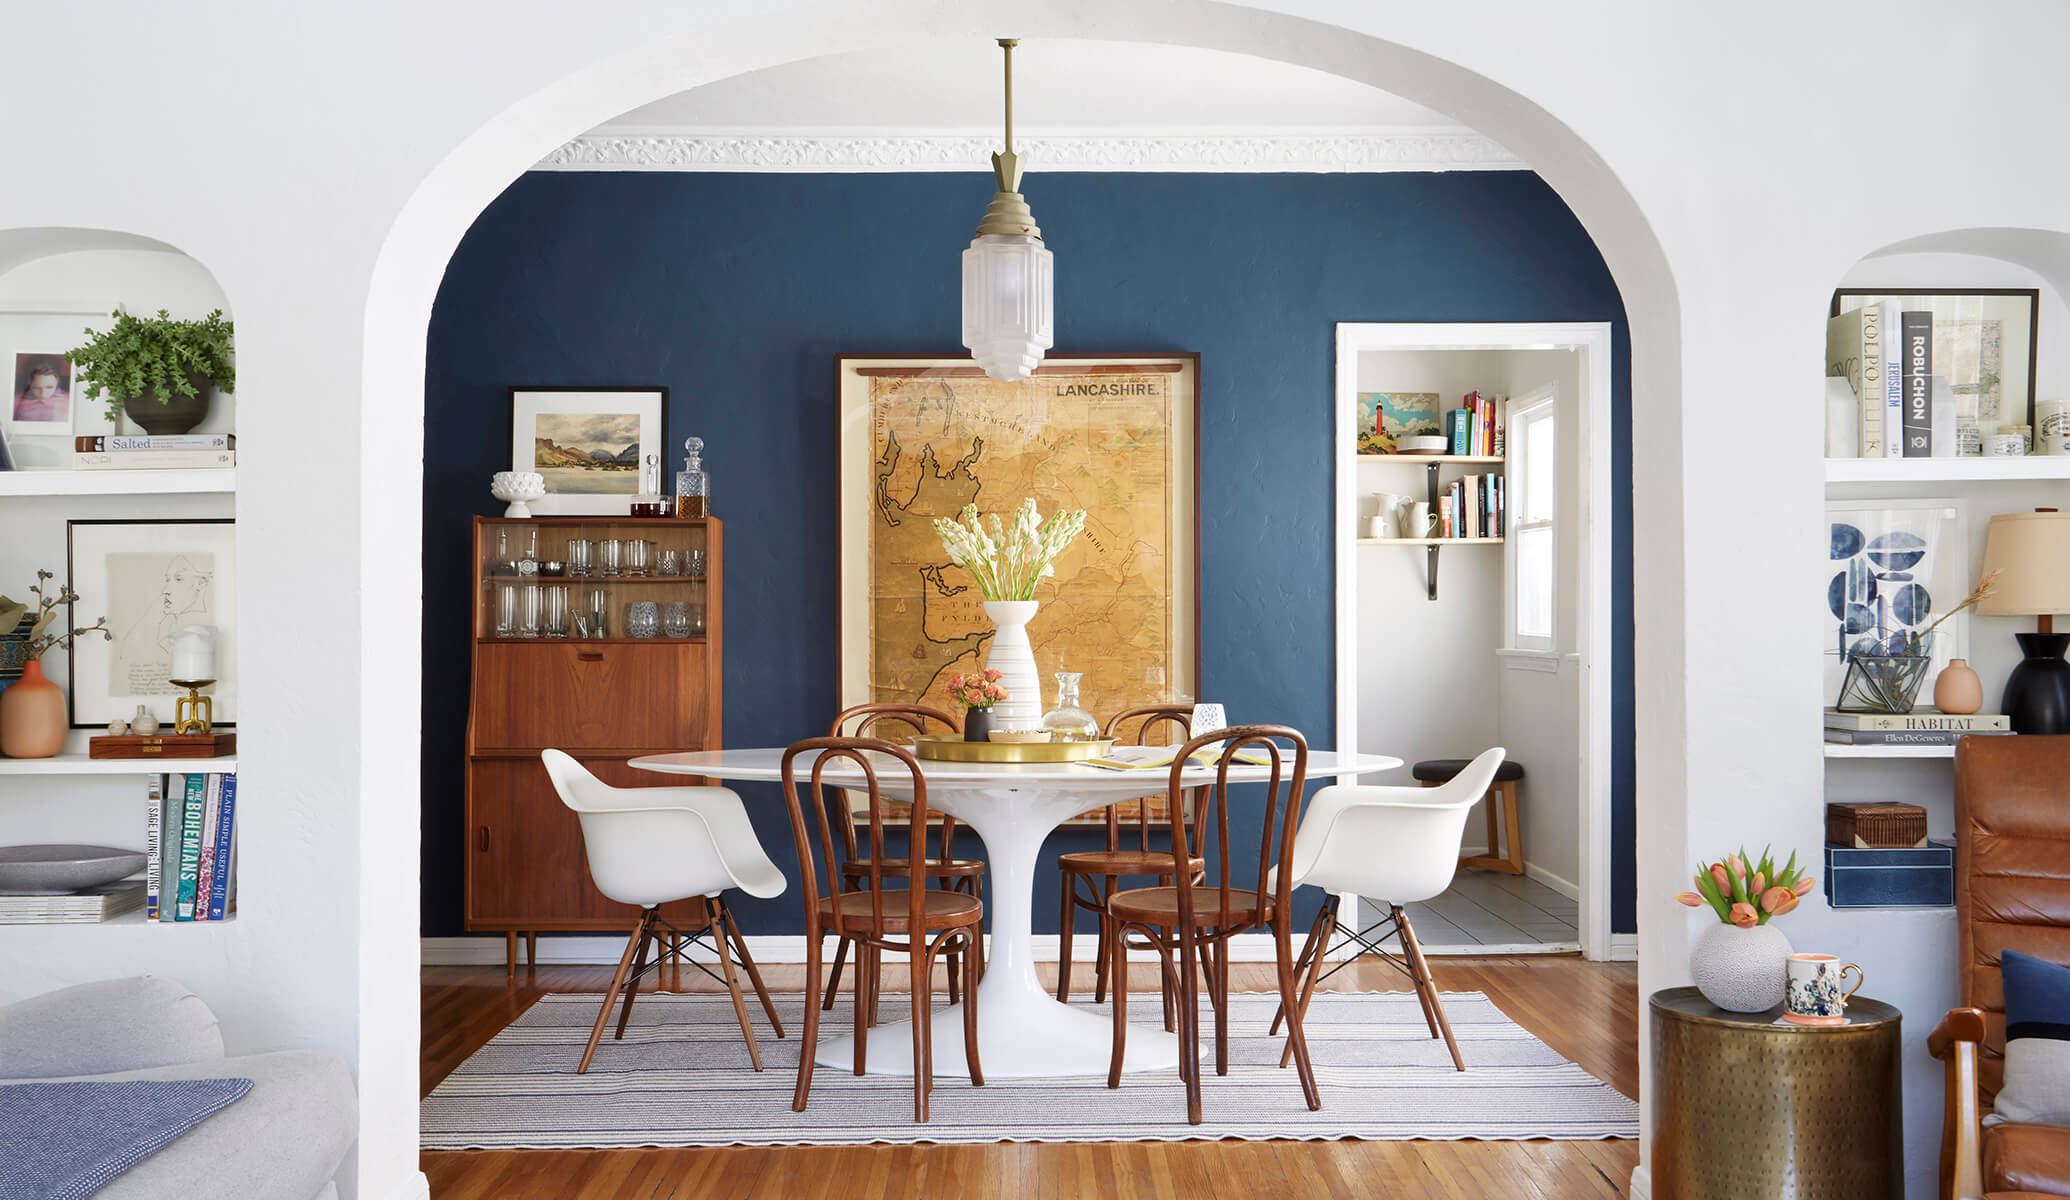 Dining_Room_1_003FEATURED_IMAGE 2